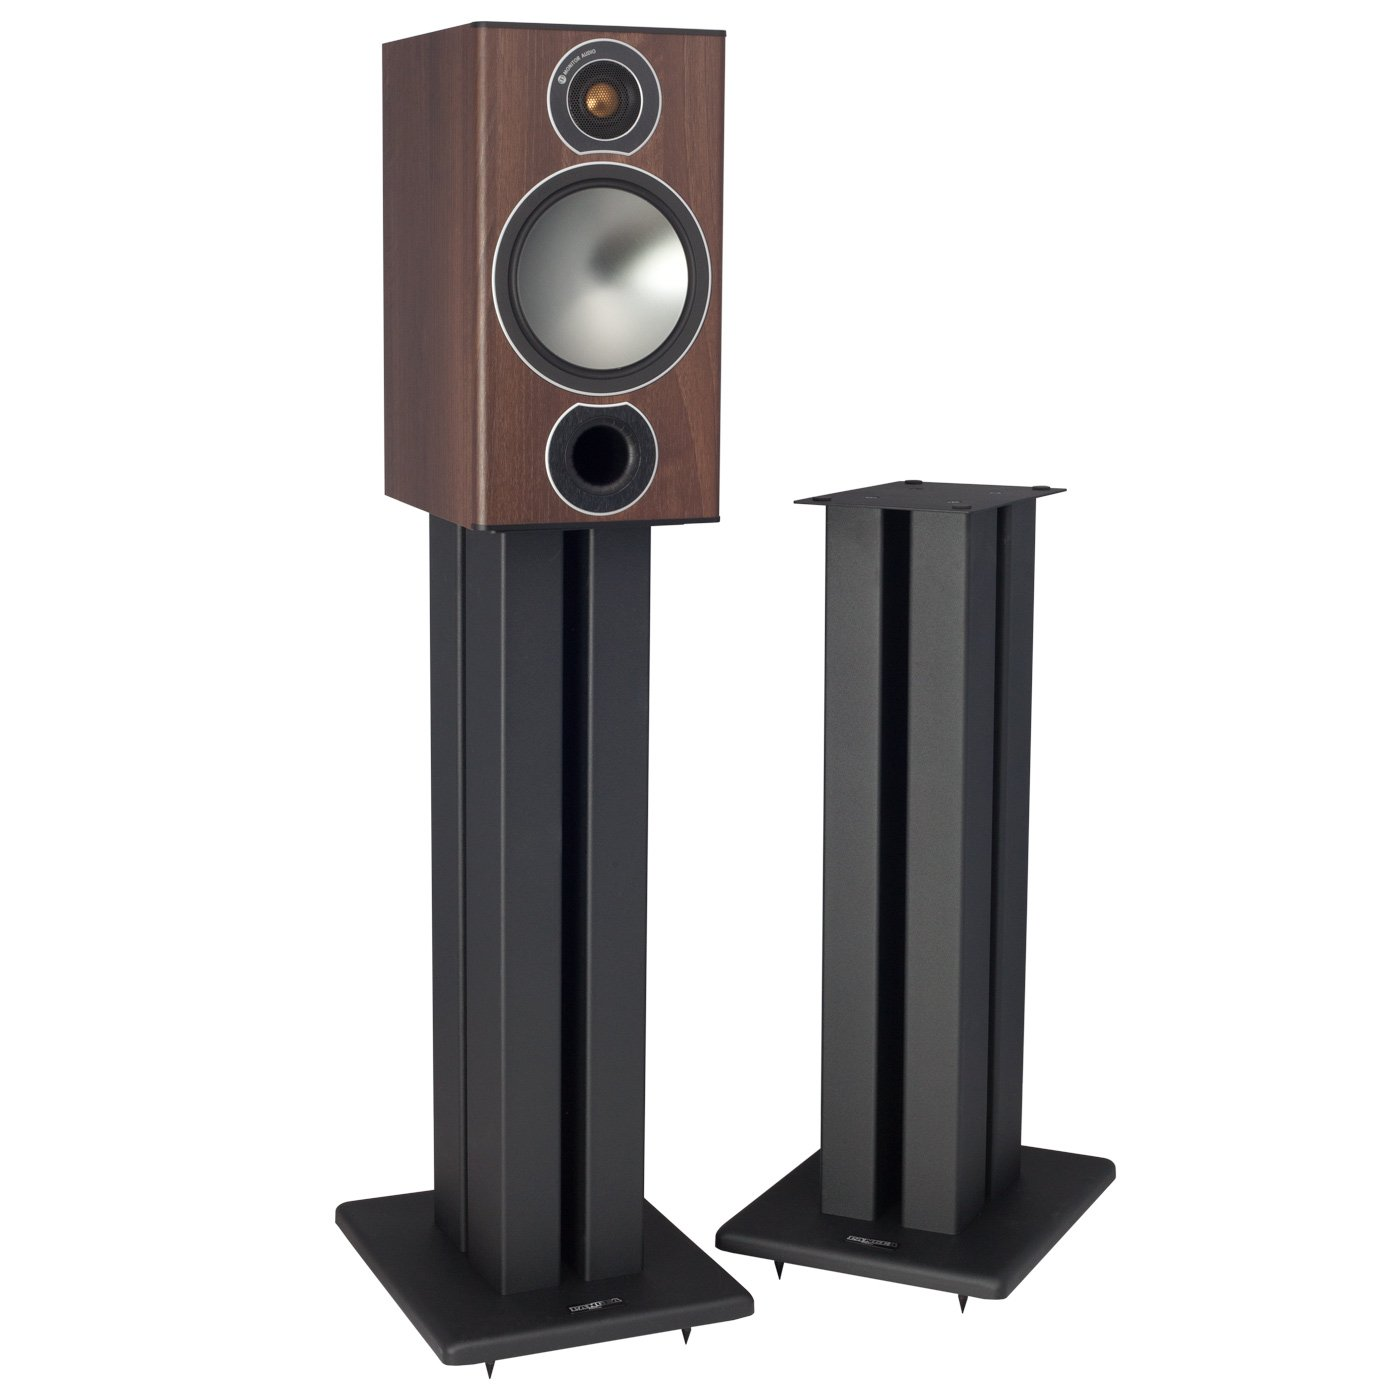 Pangea Audio DS400 Heavy Duty Speaker Stands (32 Inch) LYSB01EXIO44W-ELECTRNCS